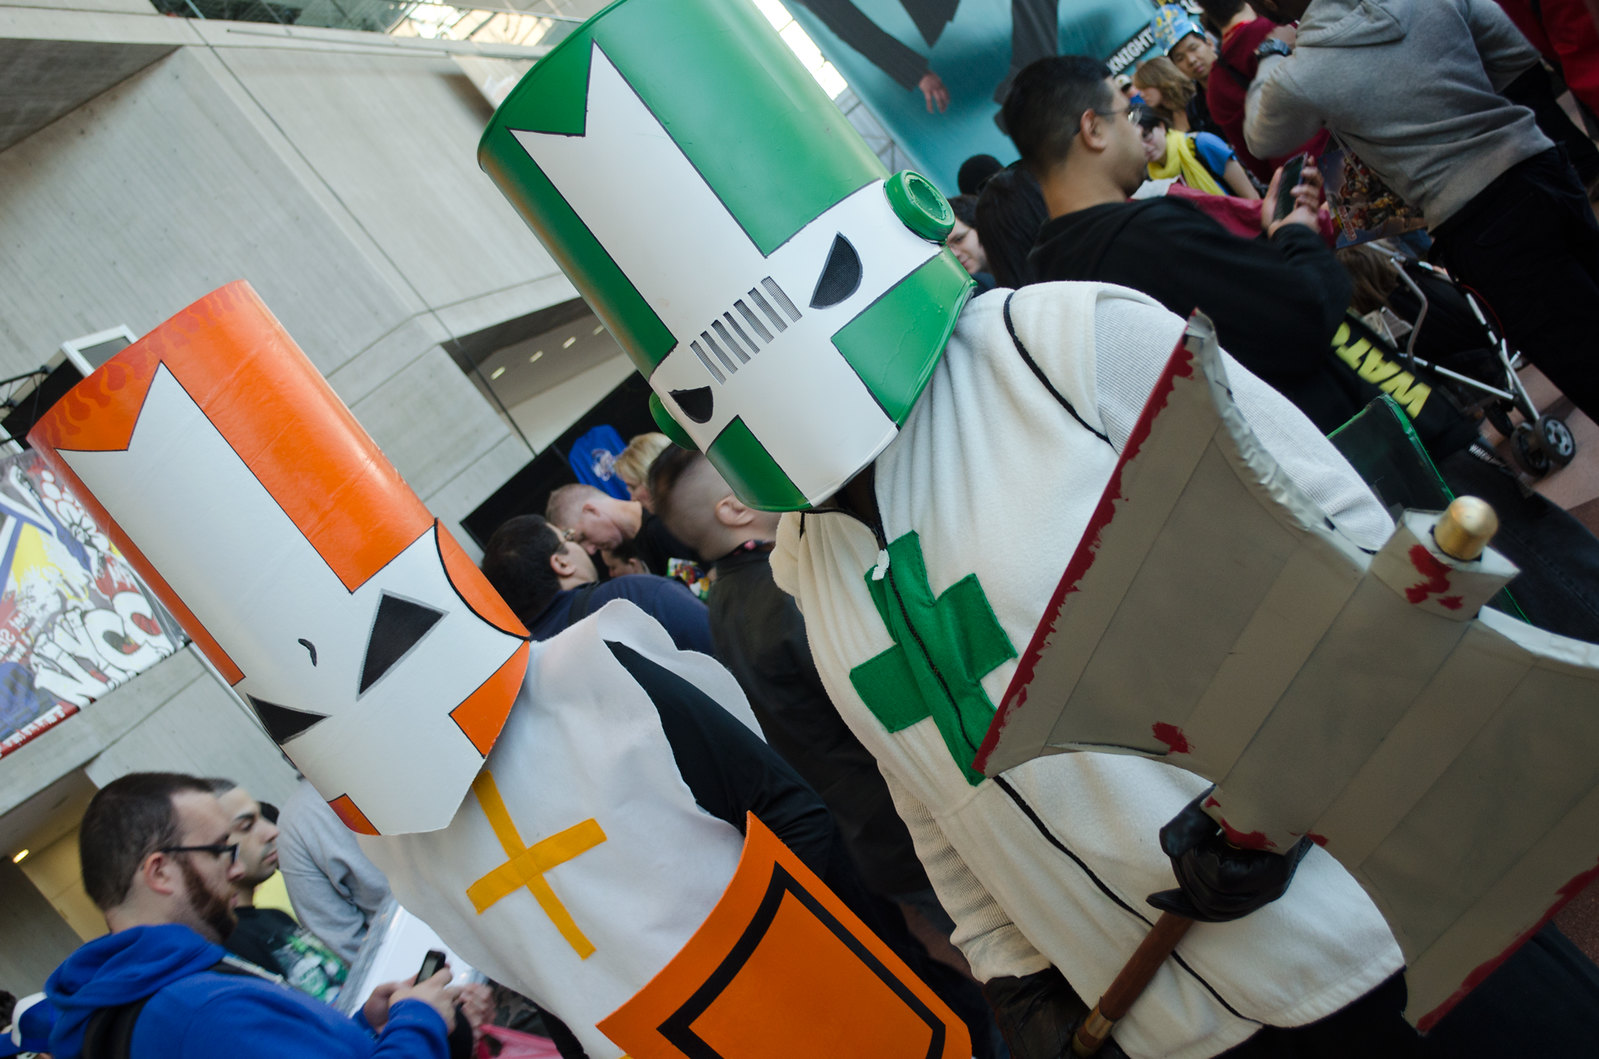 Castle Crashers Cosplay